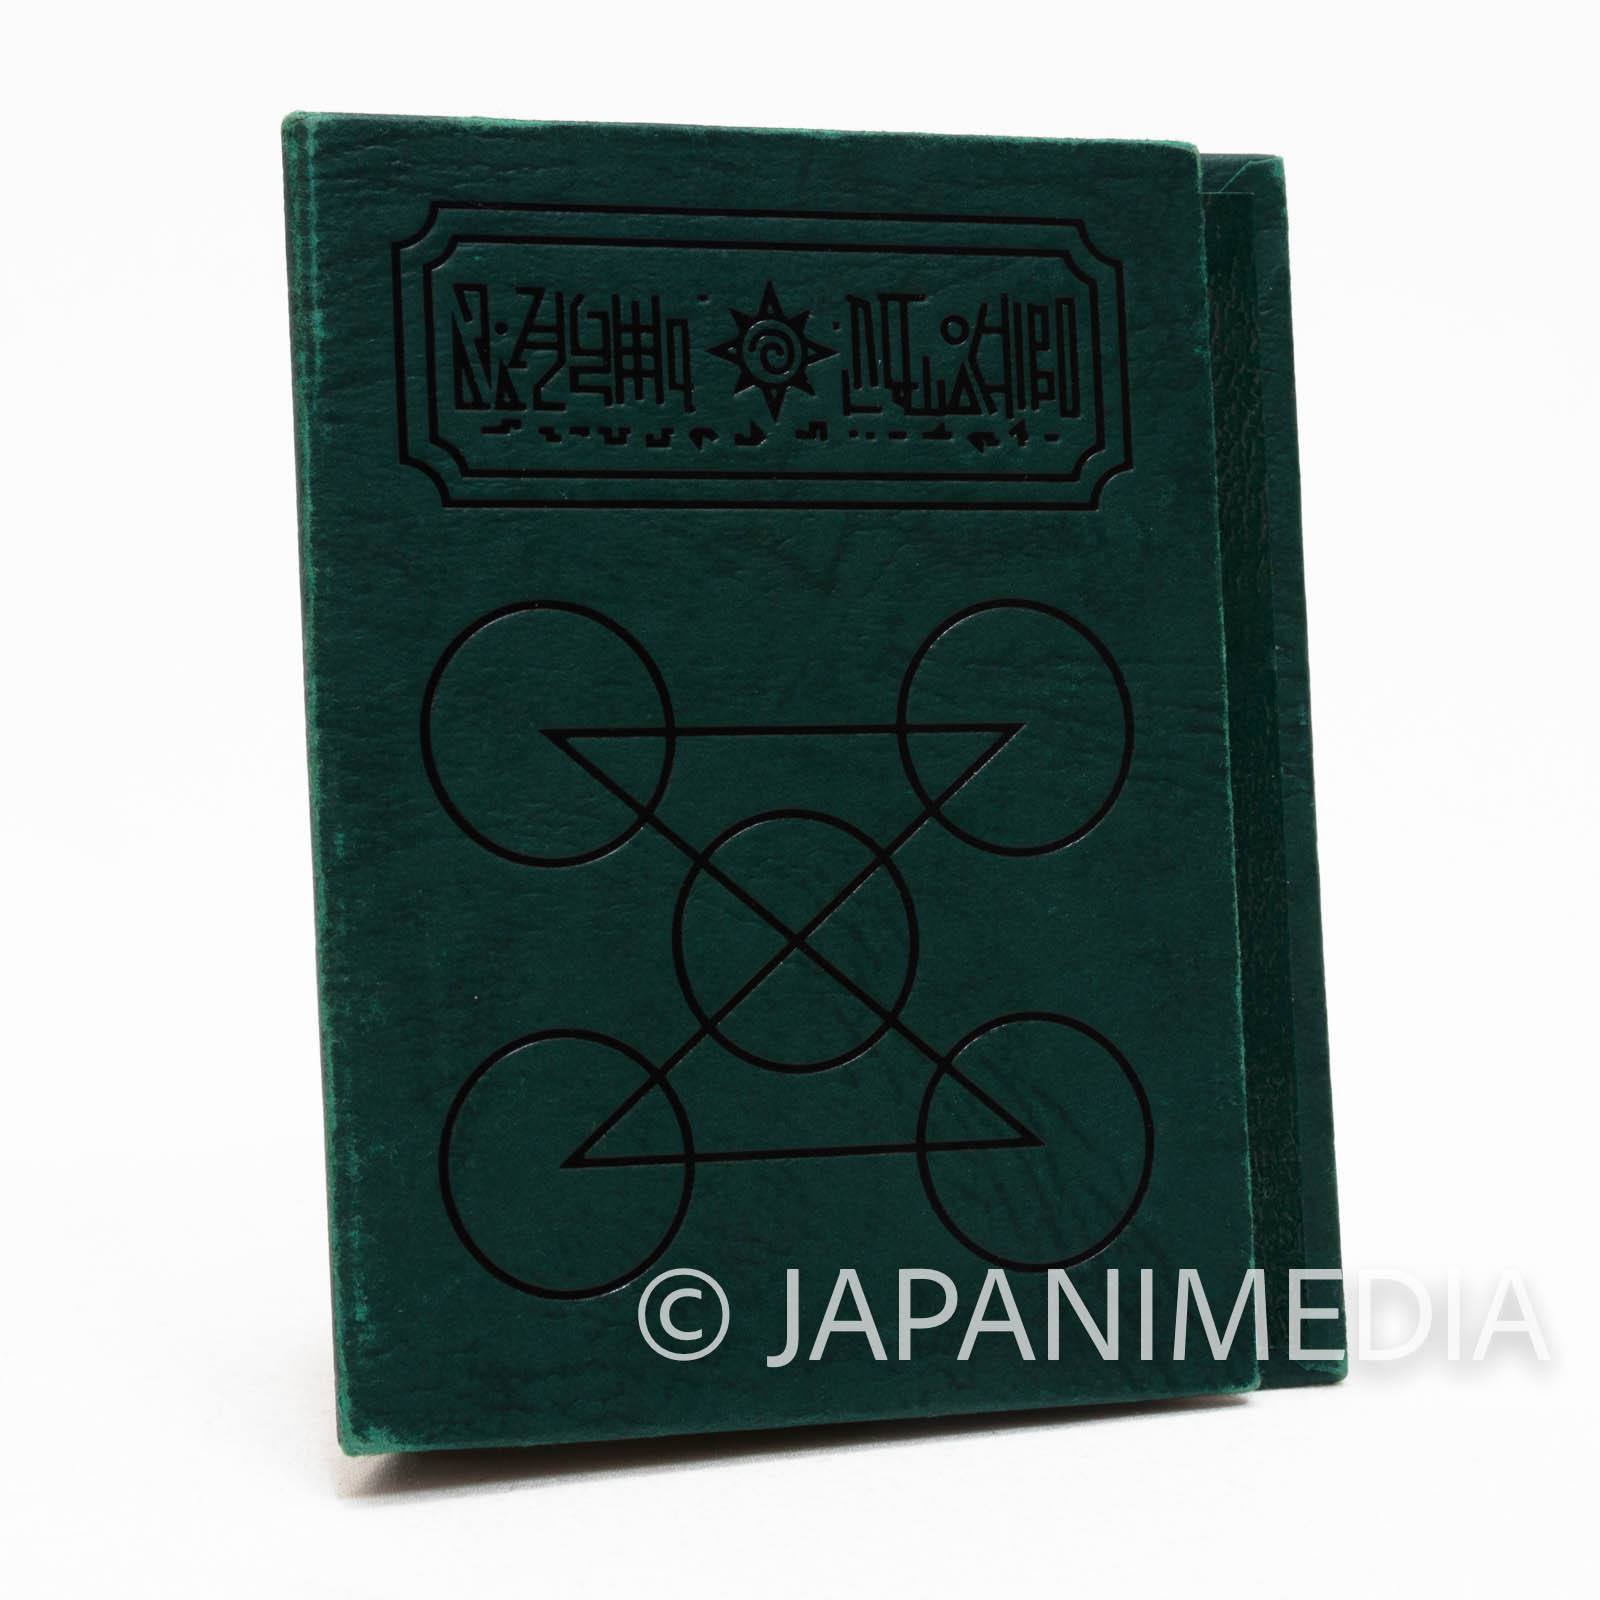 Zatch Bell! Spell Book The Card Battle Card case (Demolt ver.  Dark green) JAPAN ANIME